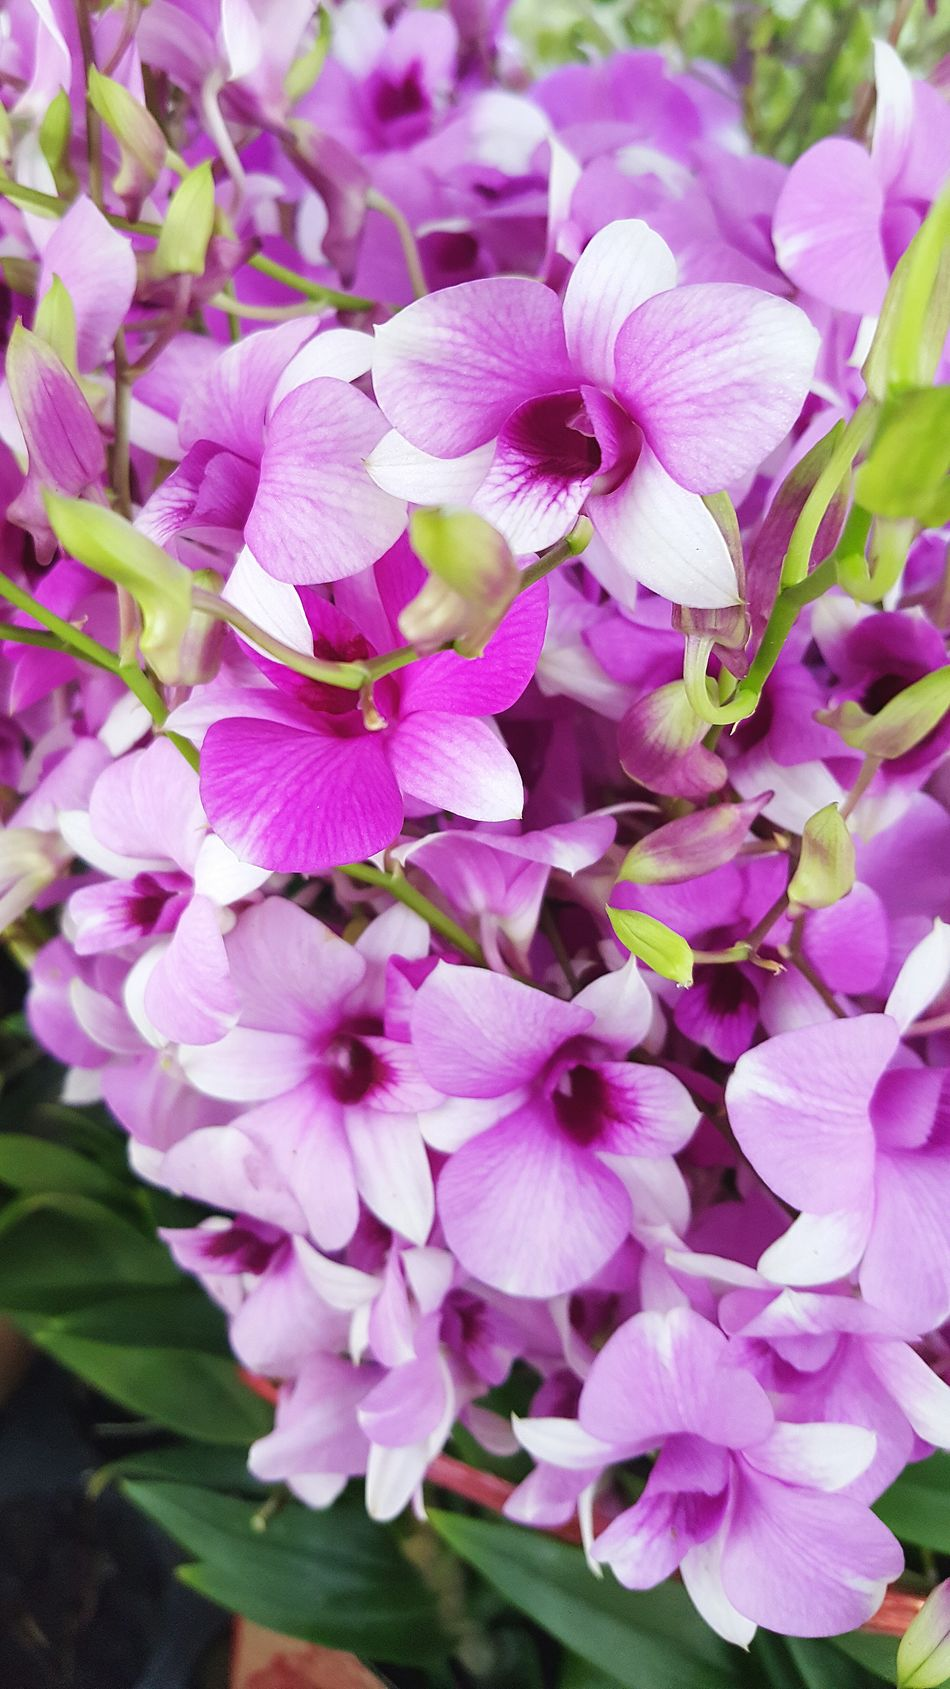 Orchids Orchid Blossoms Orchid Flower Orchidslover Orchid Collection Orchid Blossoms Orchid Flower Orchids Orchidflower Orchids Collection Orchid Flowers OrchidLover Orchid Pink Flower Pink Flowers Pink Flower 🌸 Pinkflowers Pink Blossoms